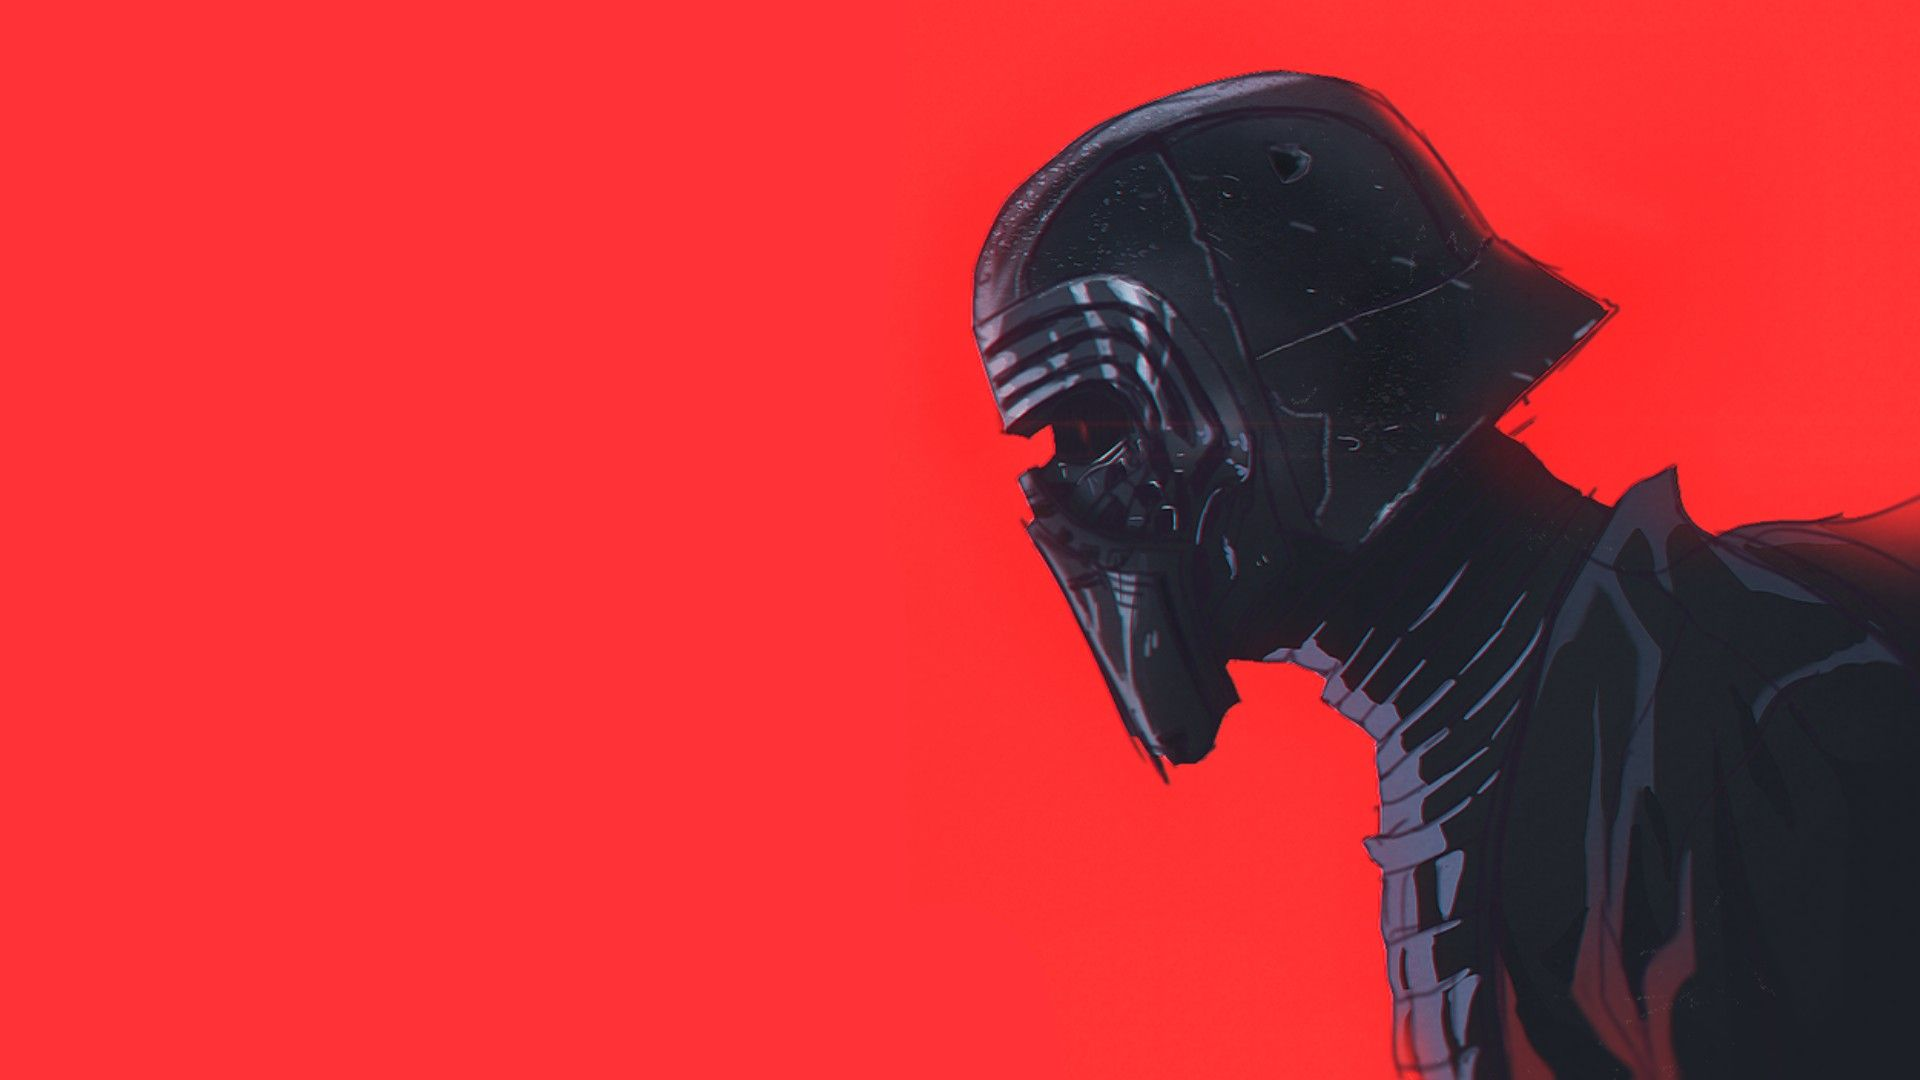 Minimalist Wallpaper Star Wars Posted By Sarah Sellers